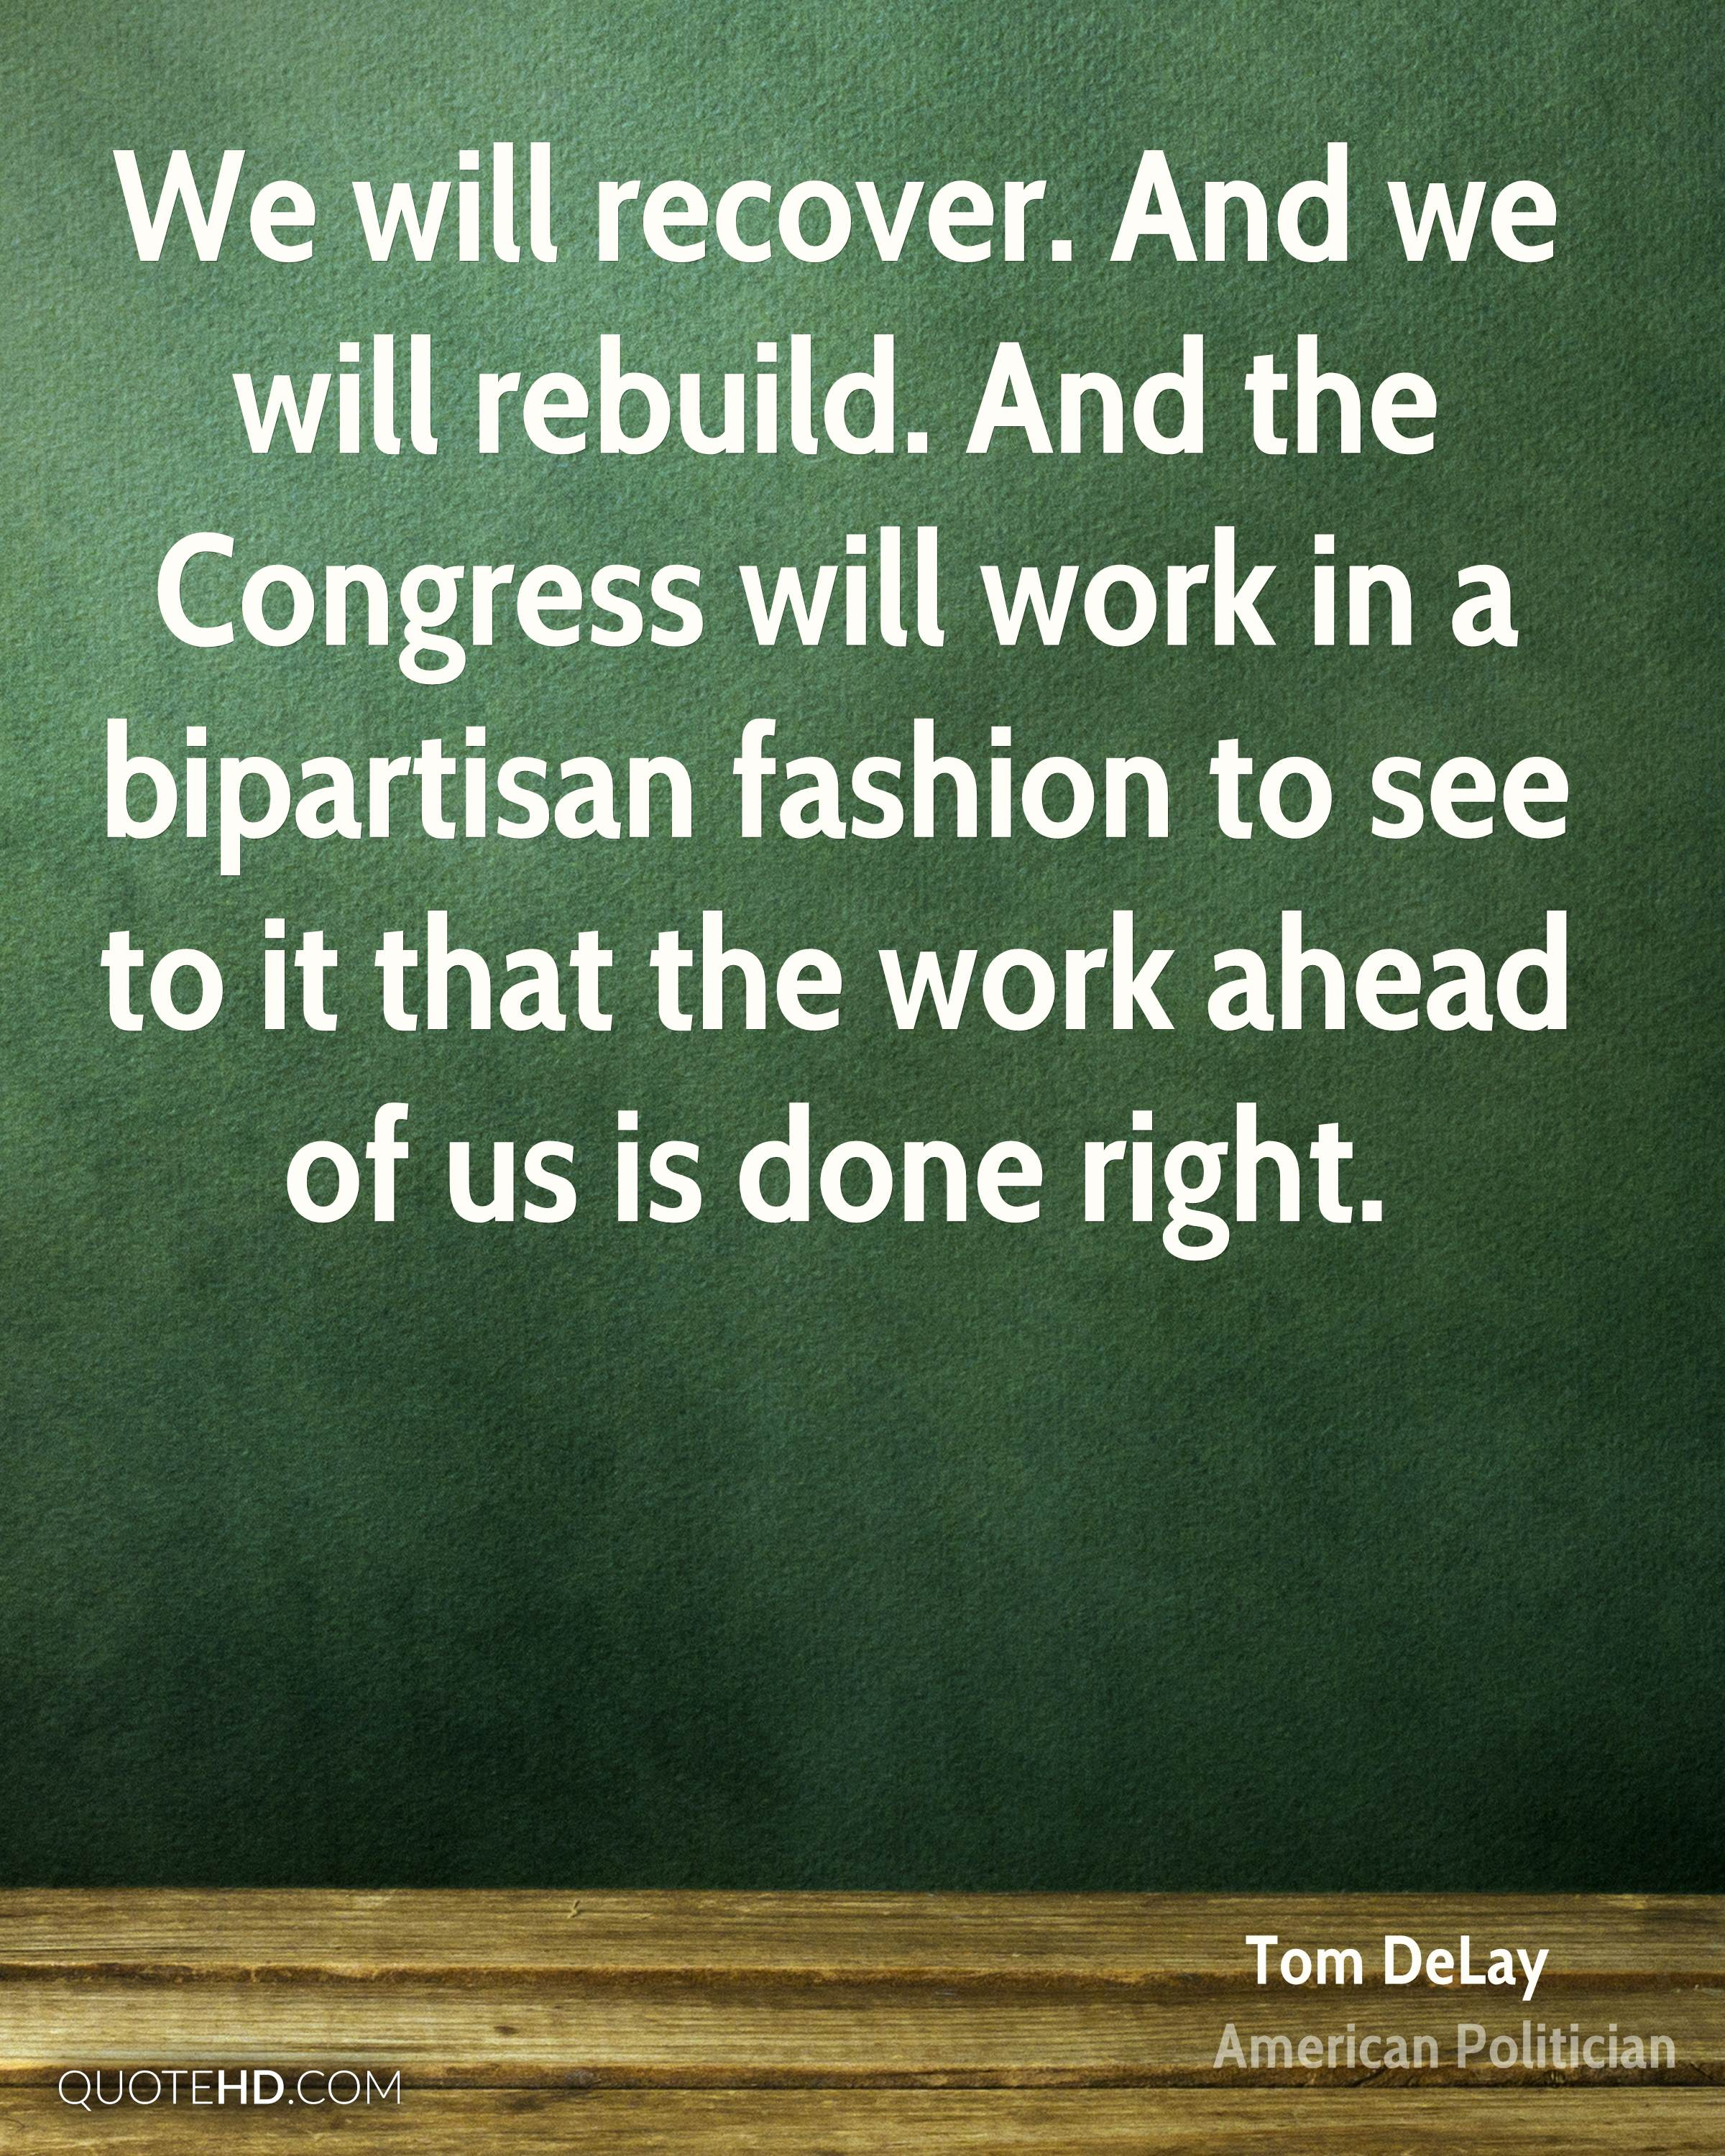 We will recover. And we will rebuild. And the Congress will work in a bipartisan fashion to see to it that the work ahead of us is done right.